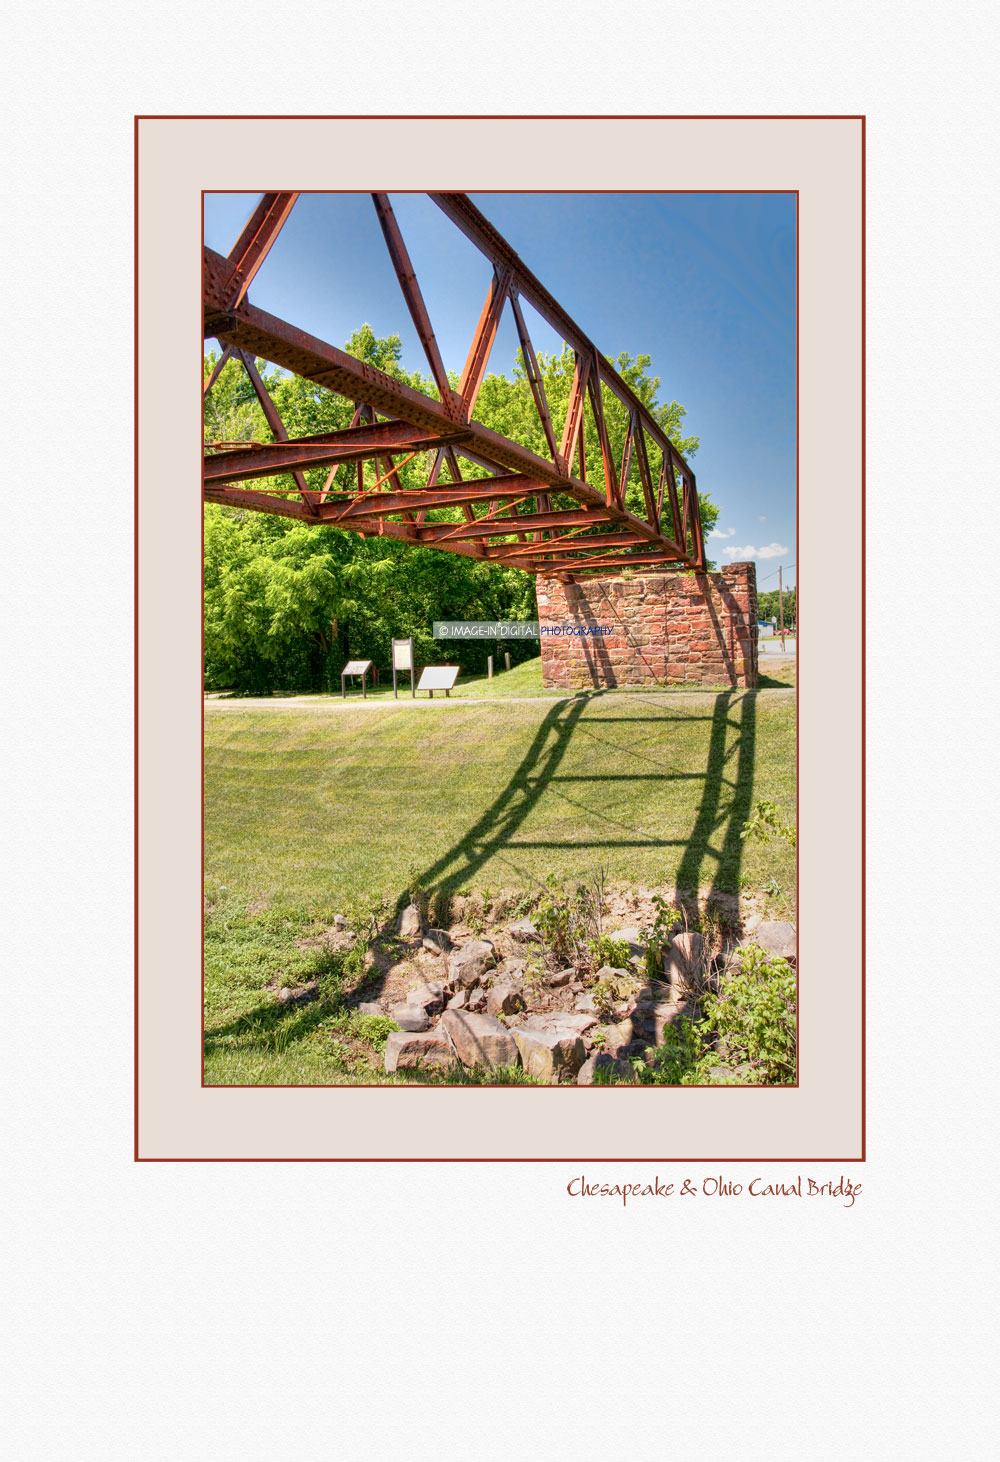 Chesapeake and Ohio Canal Bridge